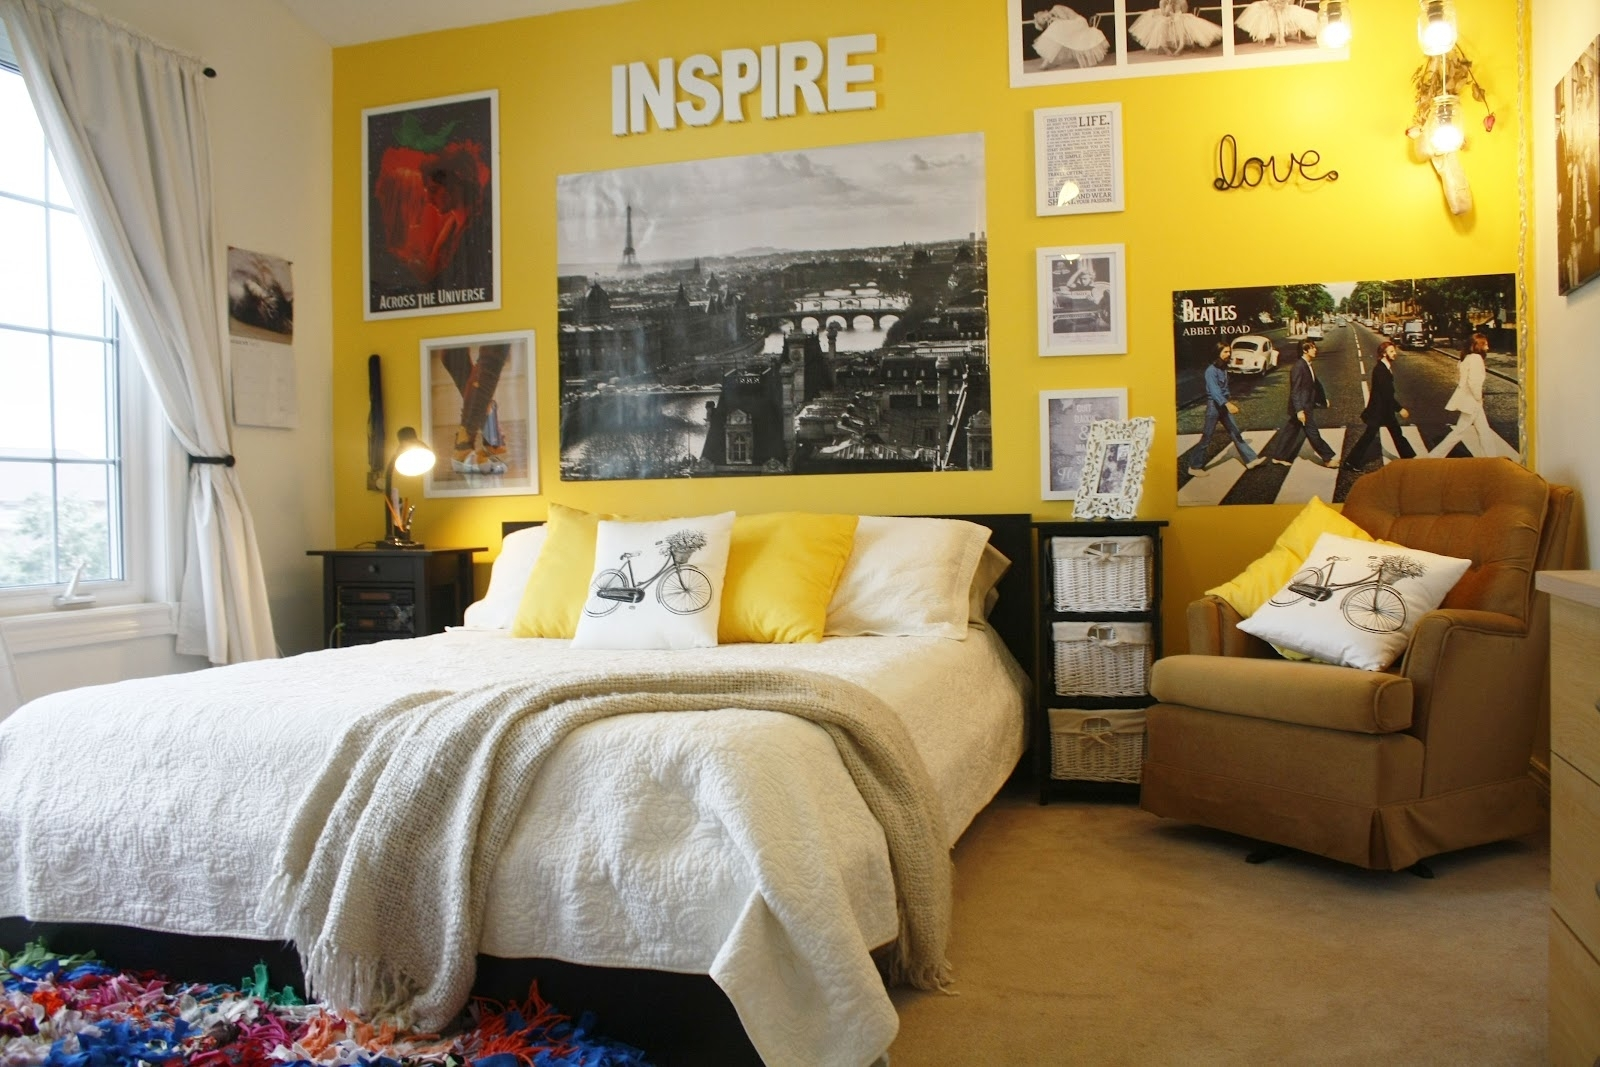 Featured Photo of Wall Accents for Yellow Room